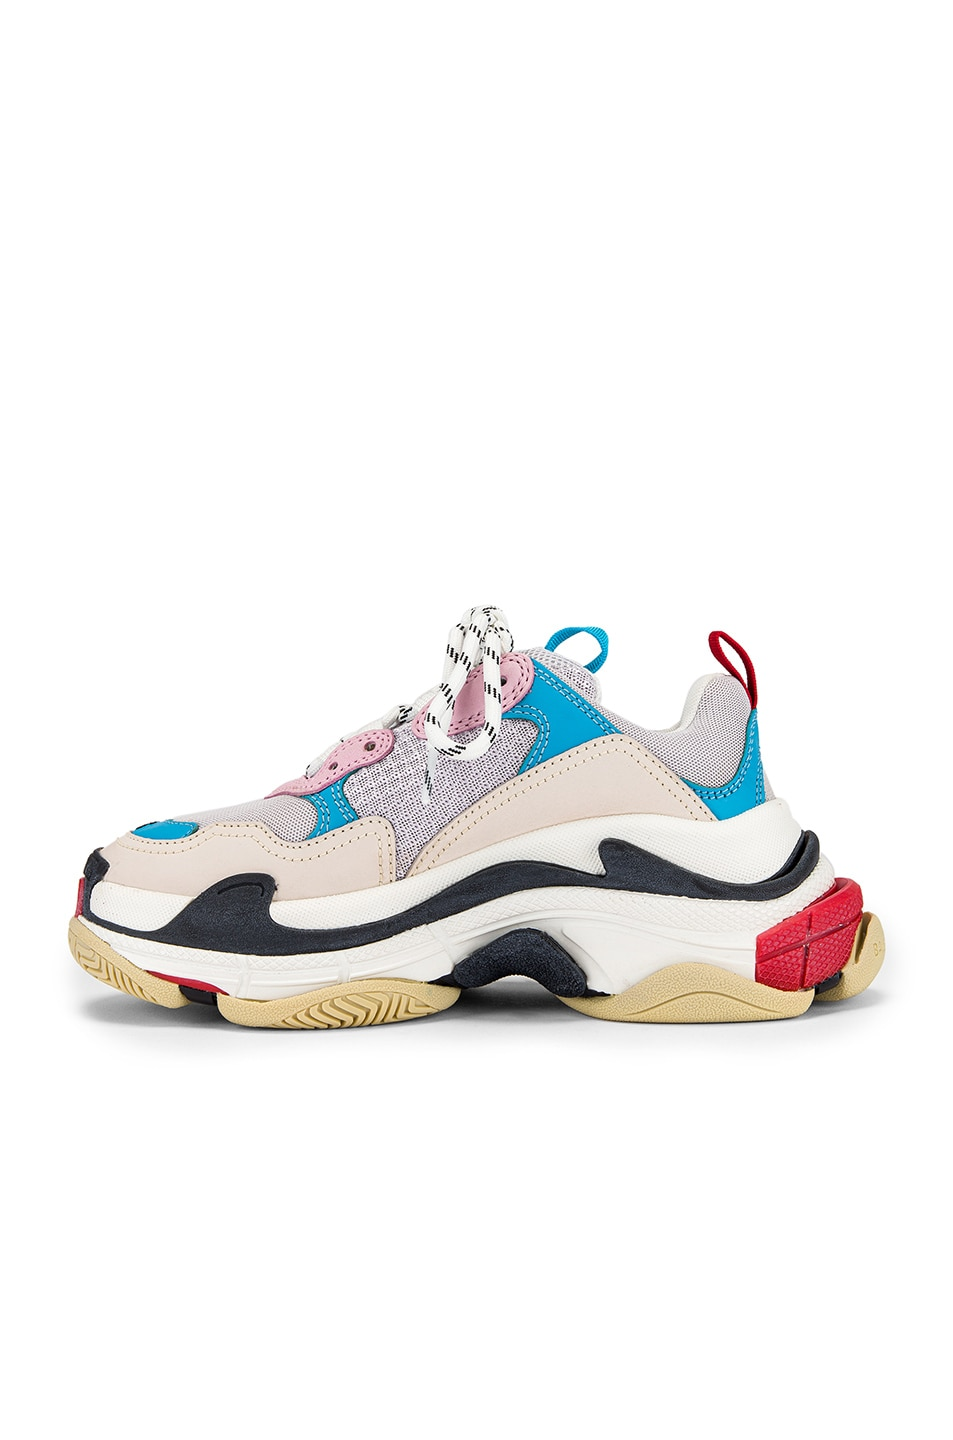 Image 5 of Balenciaga Triple S Sneakers in White & Blue